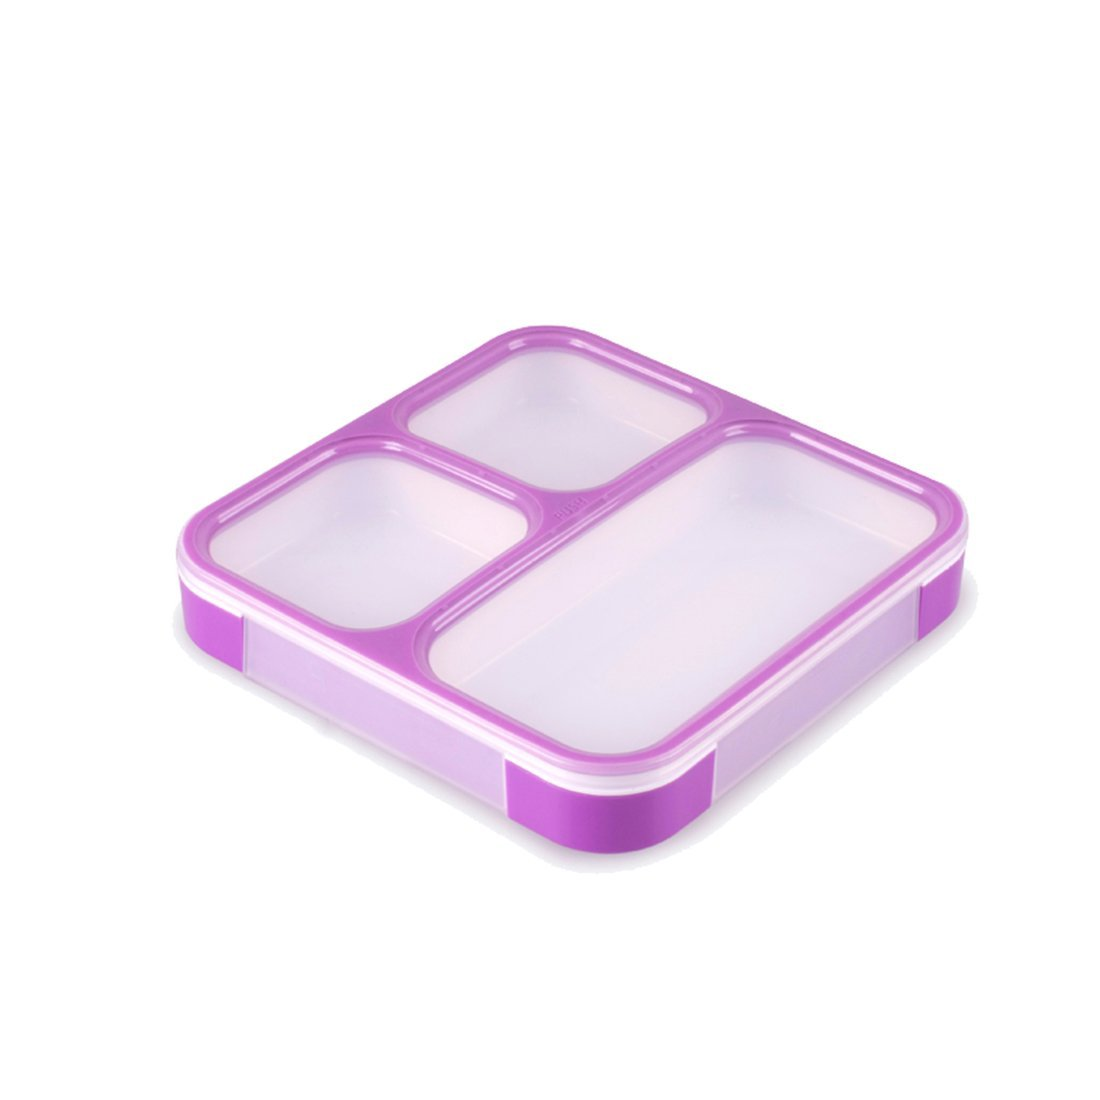 ONEONEY Kids Lunch Boxes Containers - 3 Compartments with Lids - Great for Food & Snack Storage - UNBREAKABLE, Eco-Friendly, BPA Free Plastic - Reusable and Dishwasher Safe Box-(Purple,)